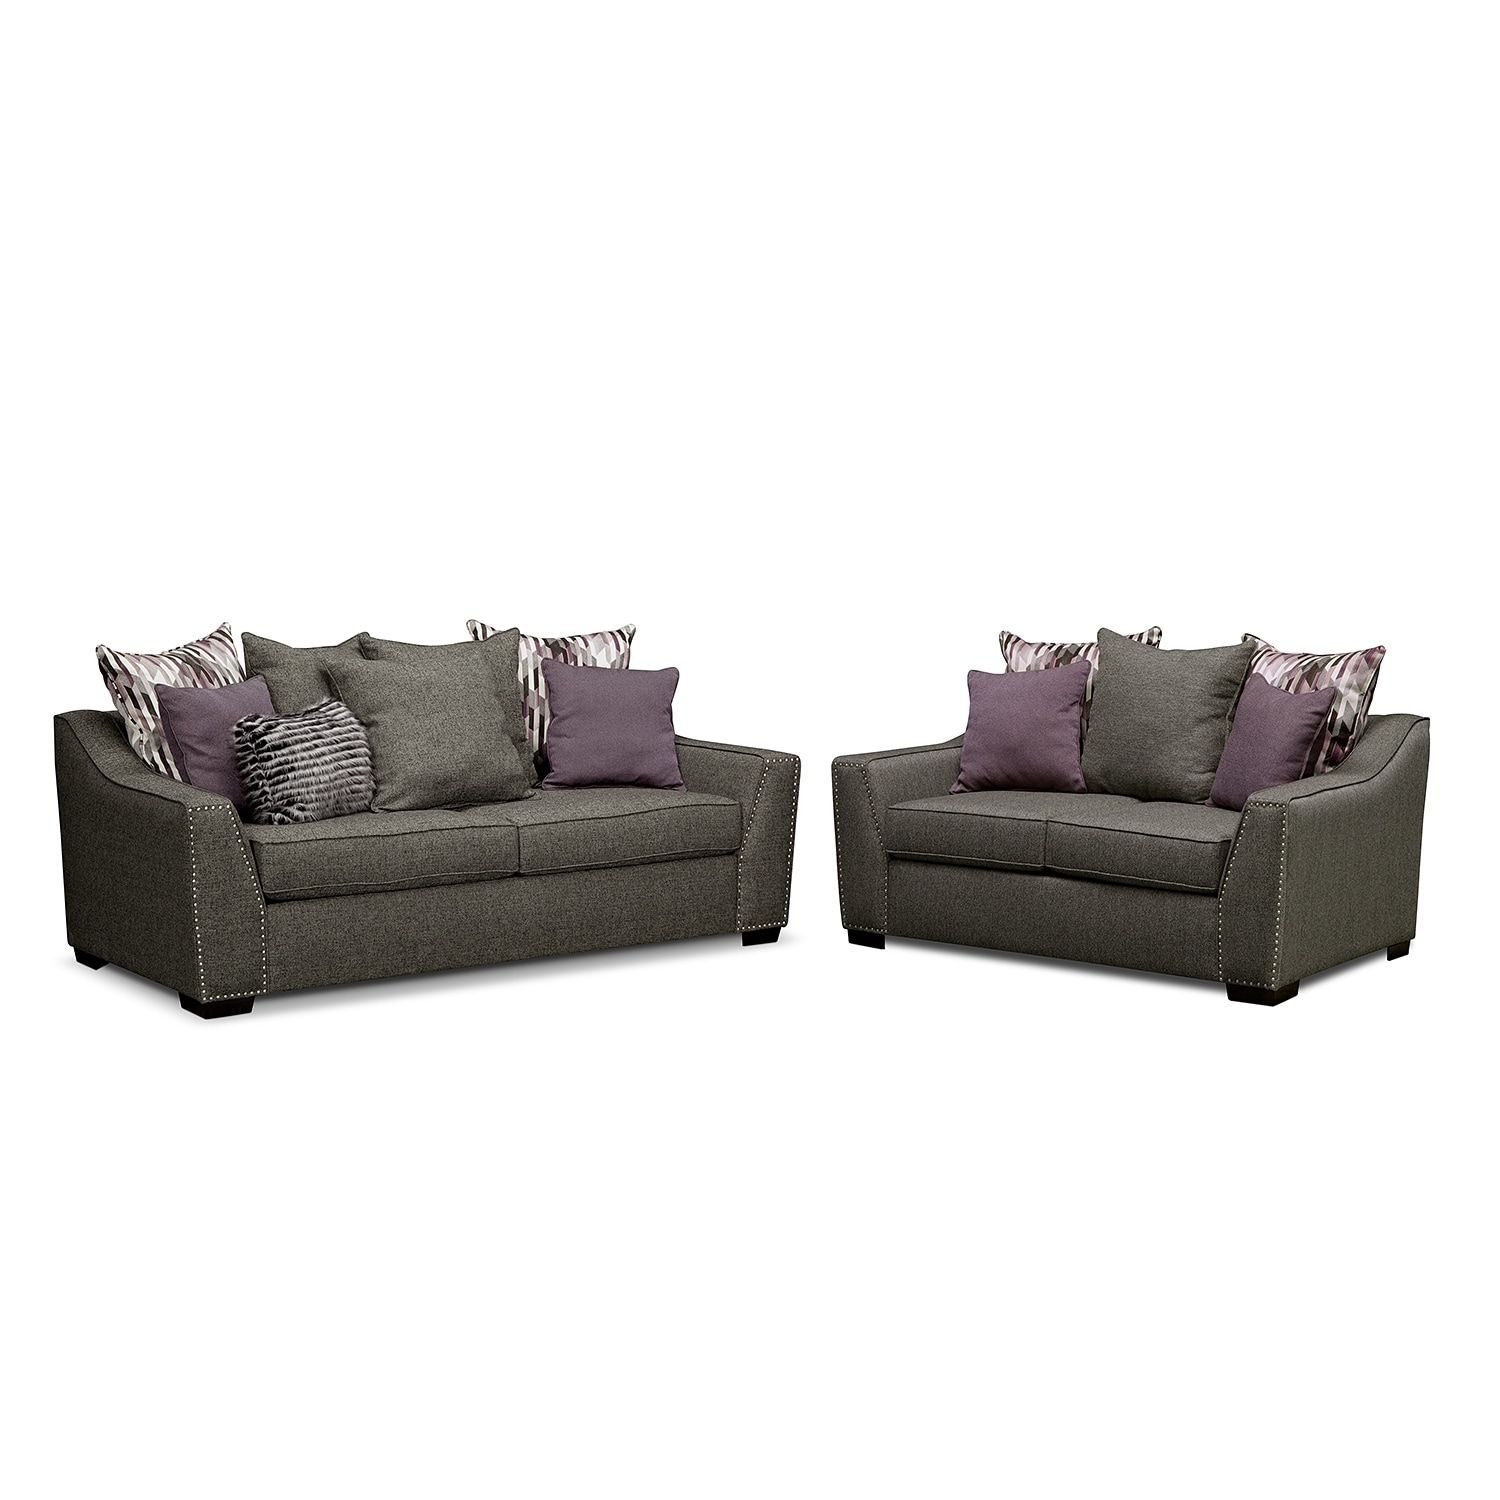 Living room furniture ritz 2 pc living room